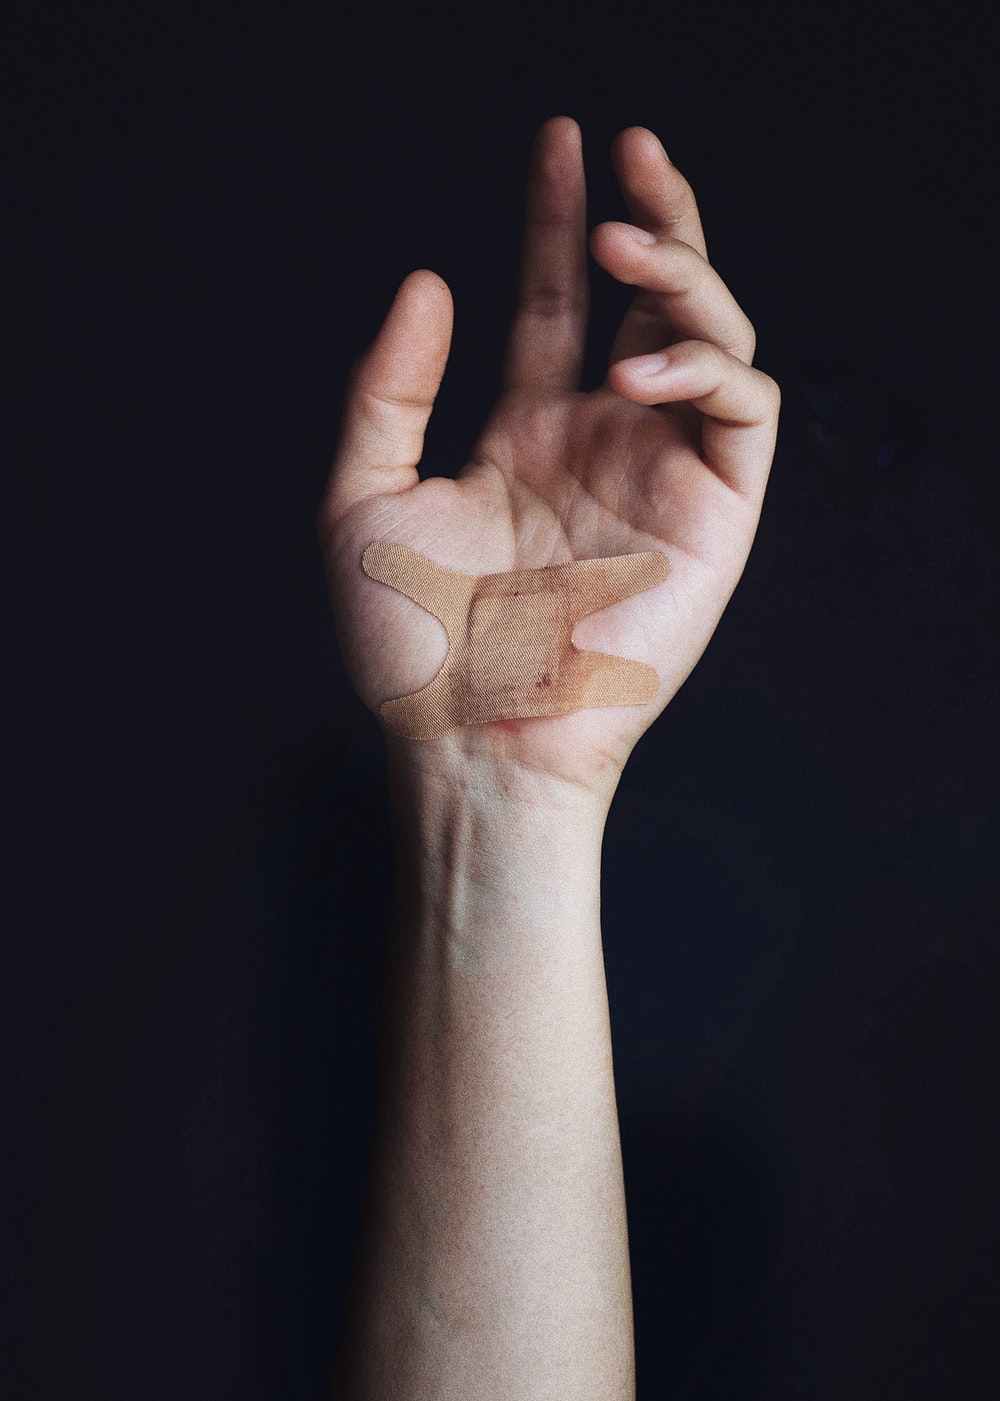 person's left palm with bandage